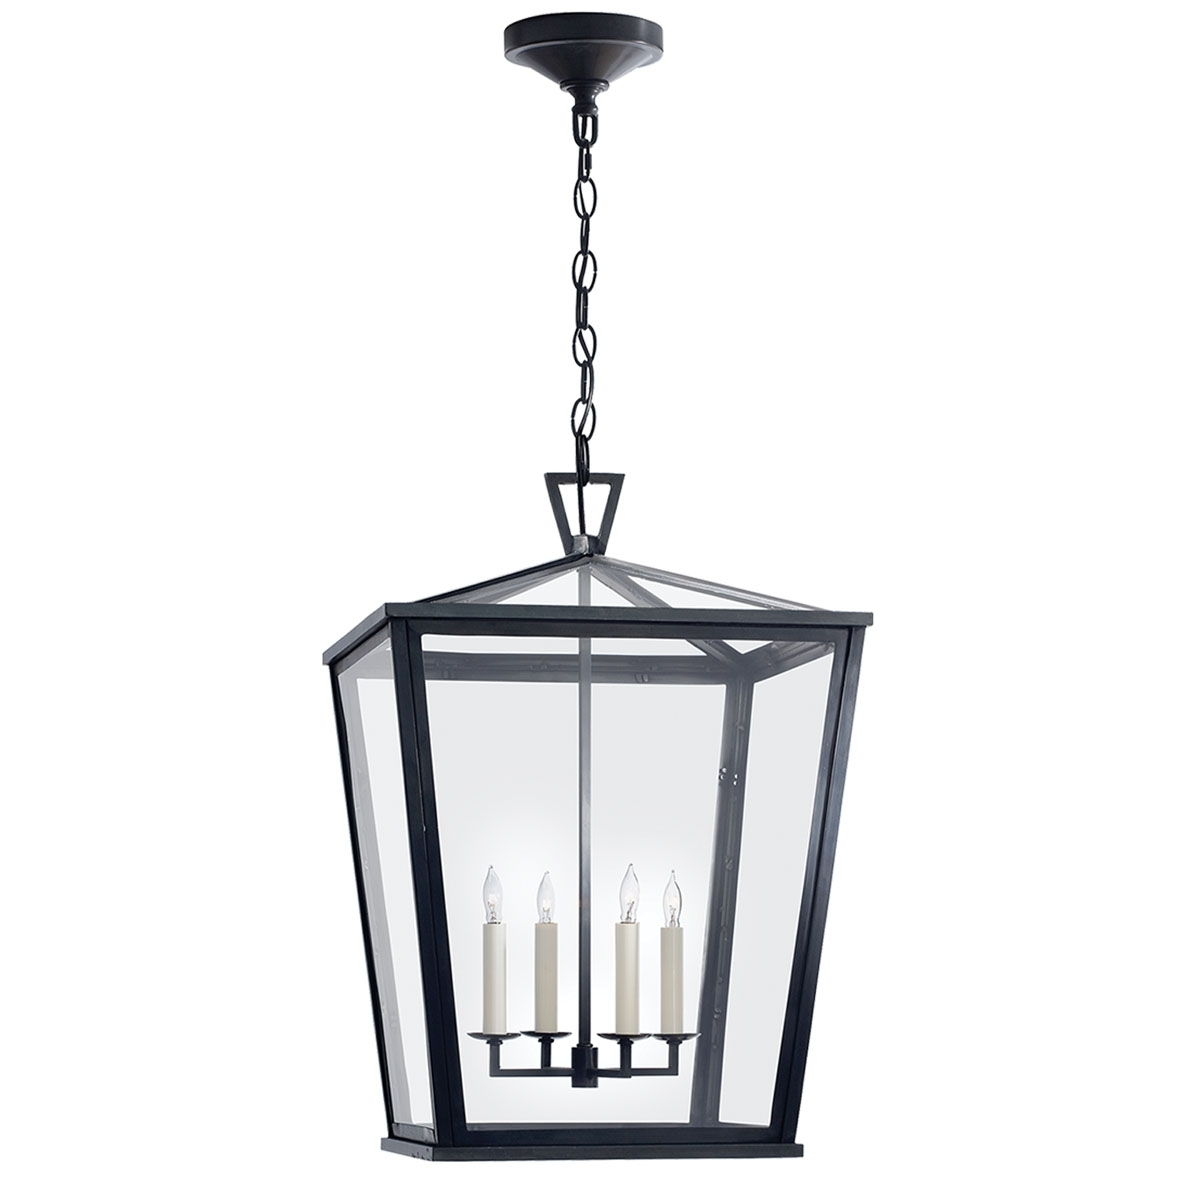 Outdoor Hanging Light In Black Throughout 2018 Visual Comfort Darlana Large Outdoor Hanging Lantern, Outdoor (View 6 of 20)